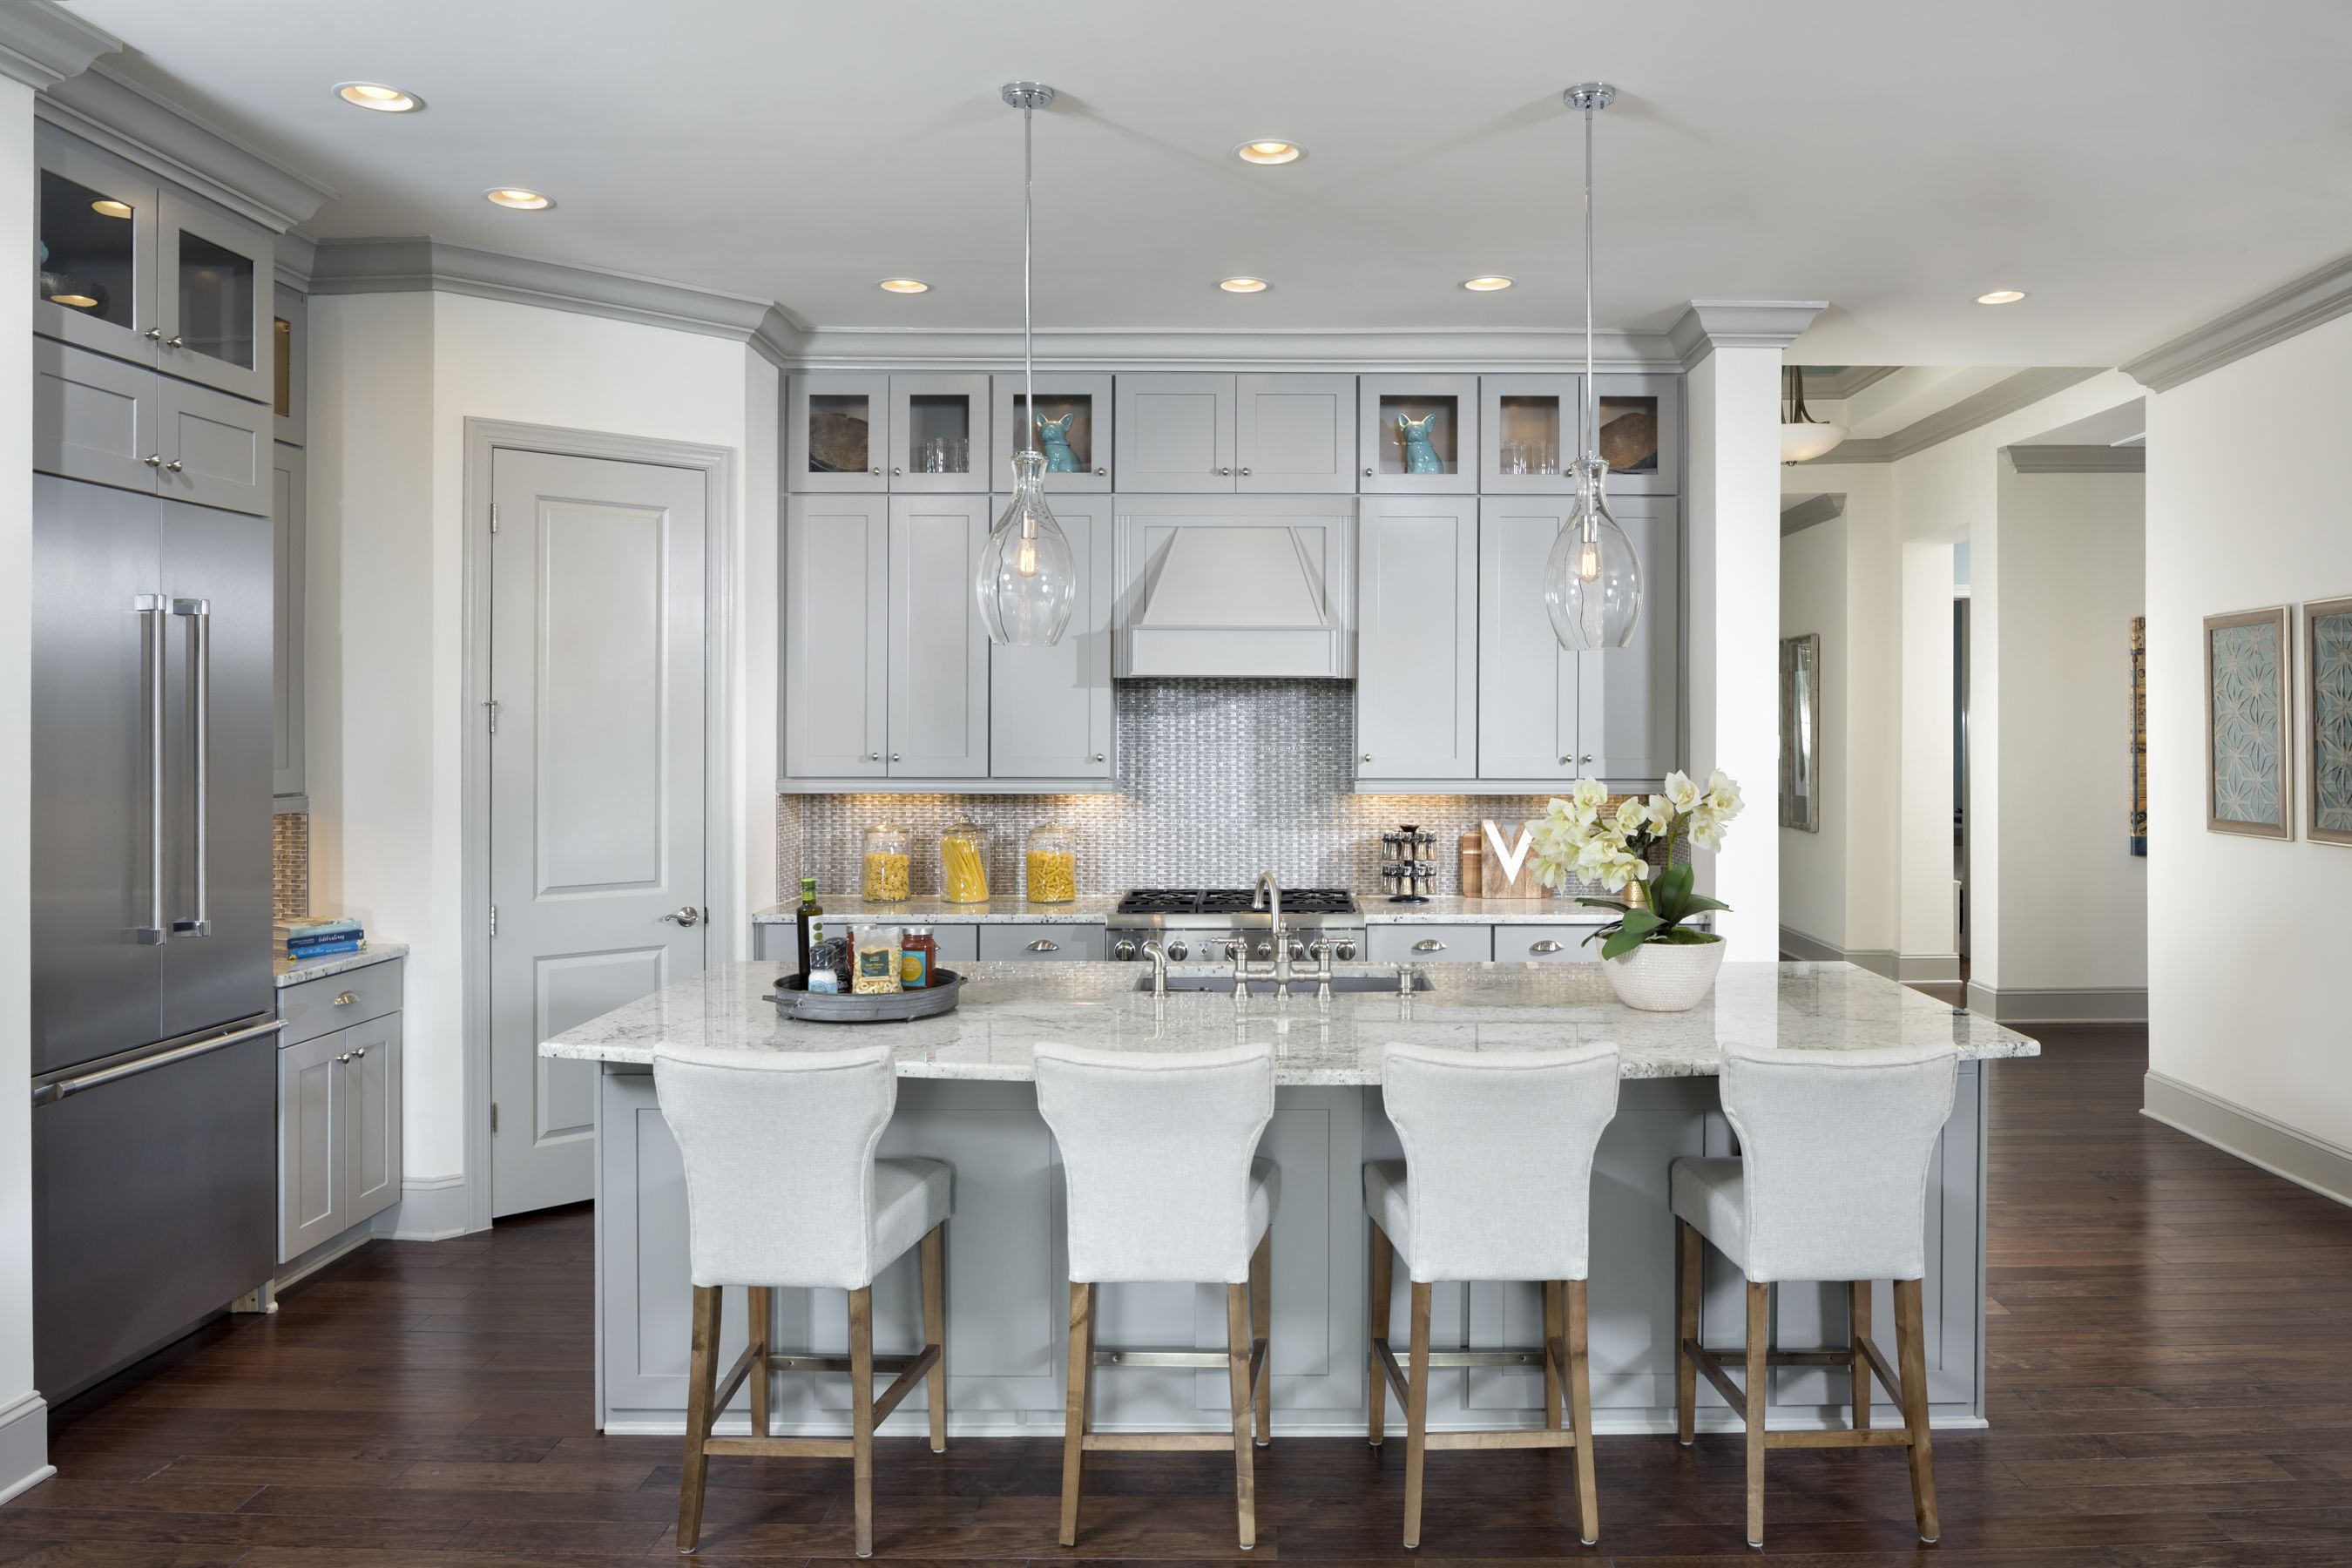 The Harwin Is Located In Chapel Hill Nc Gray Cabinets Give This